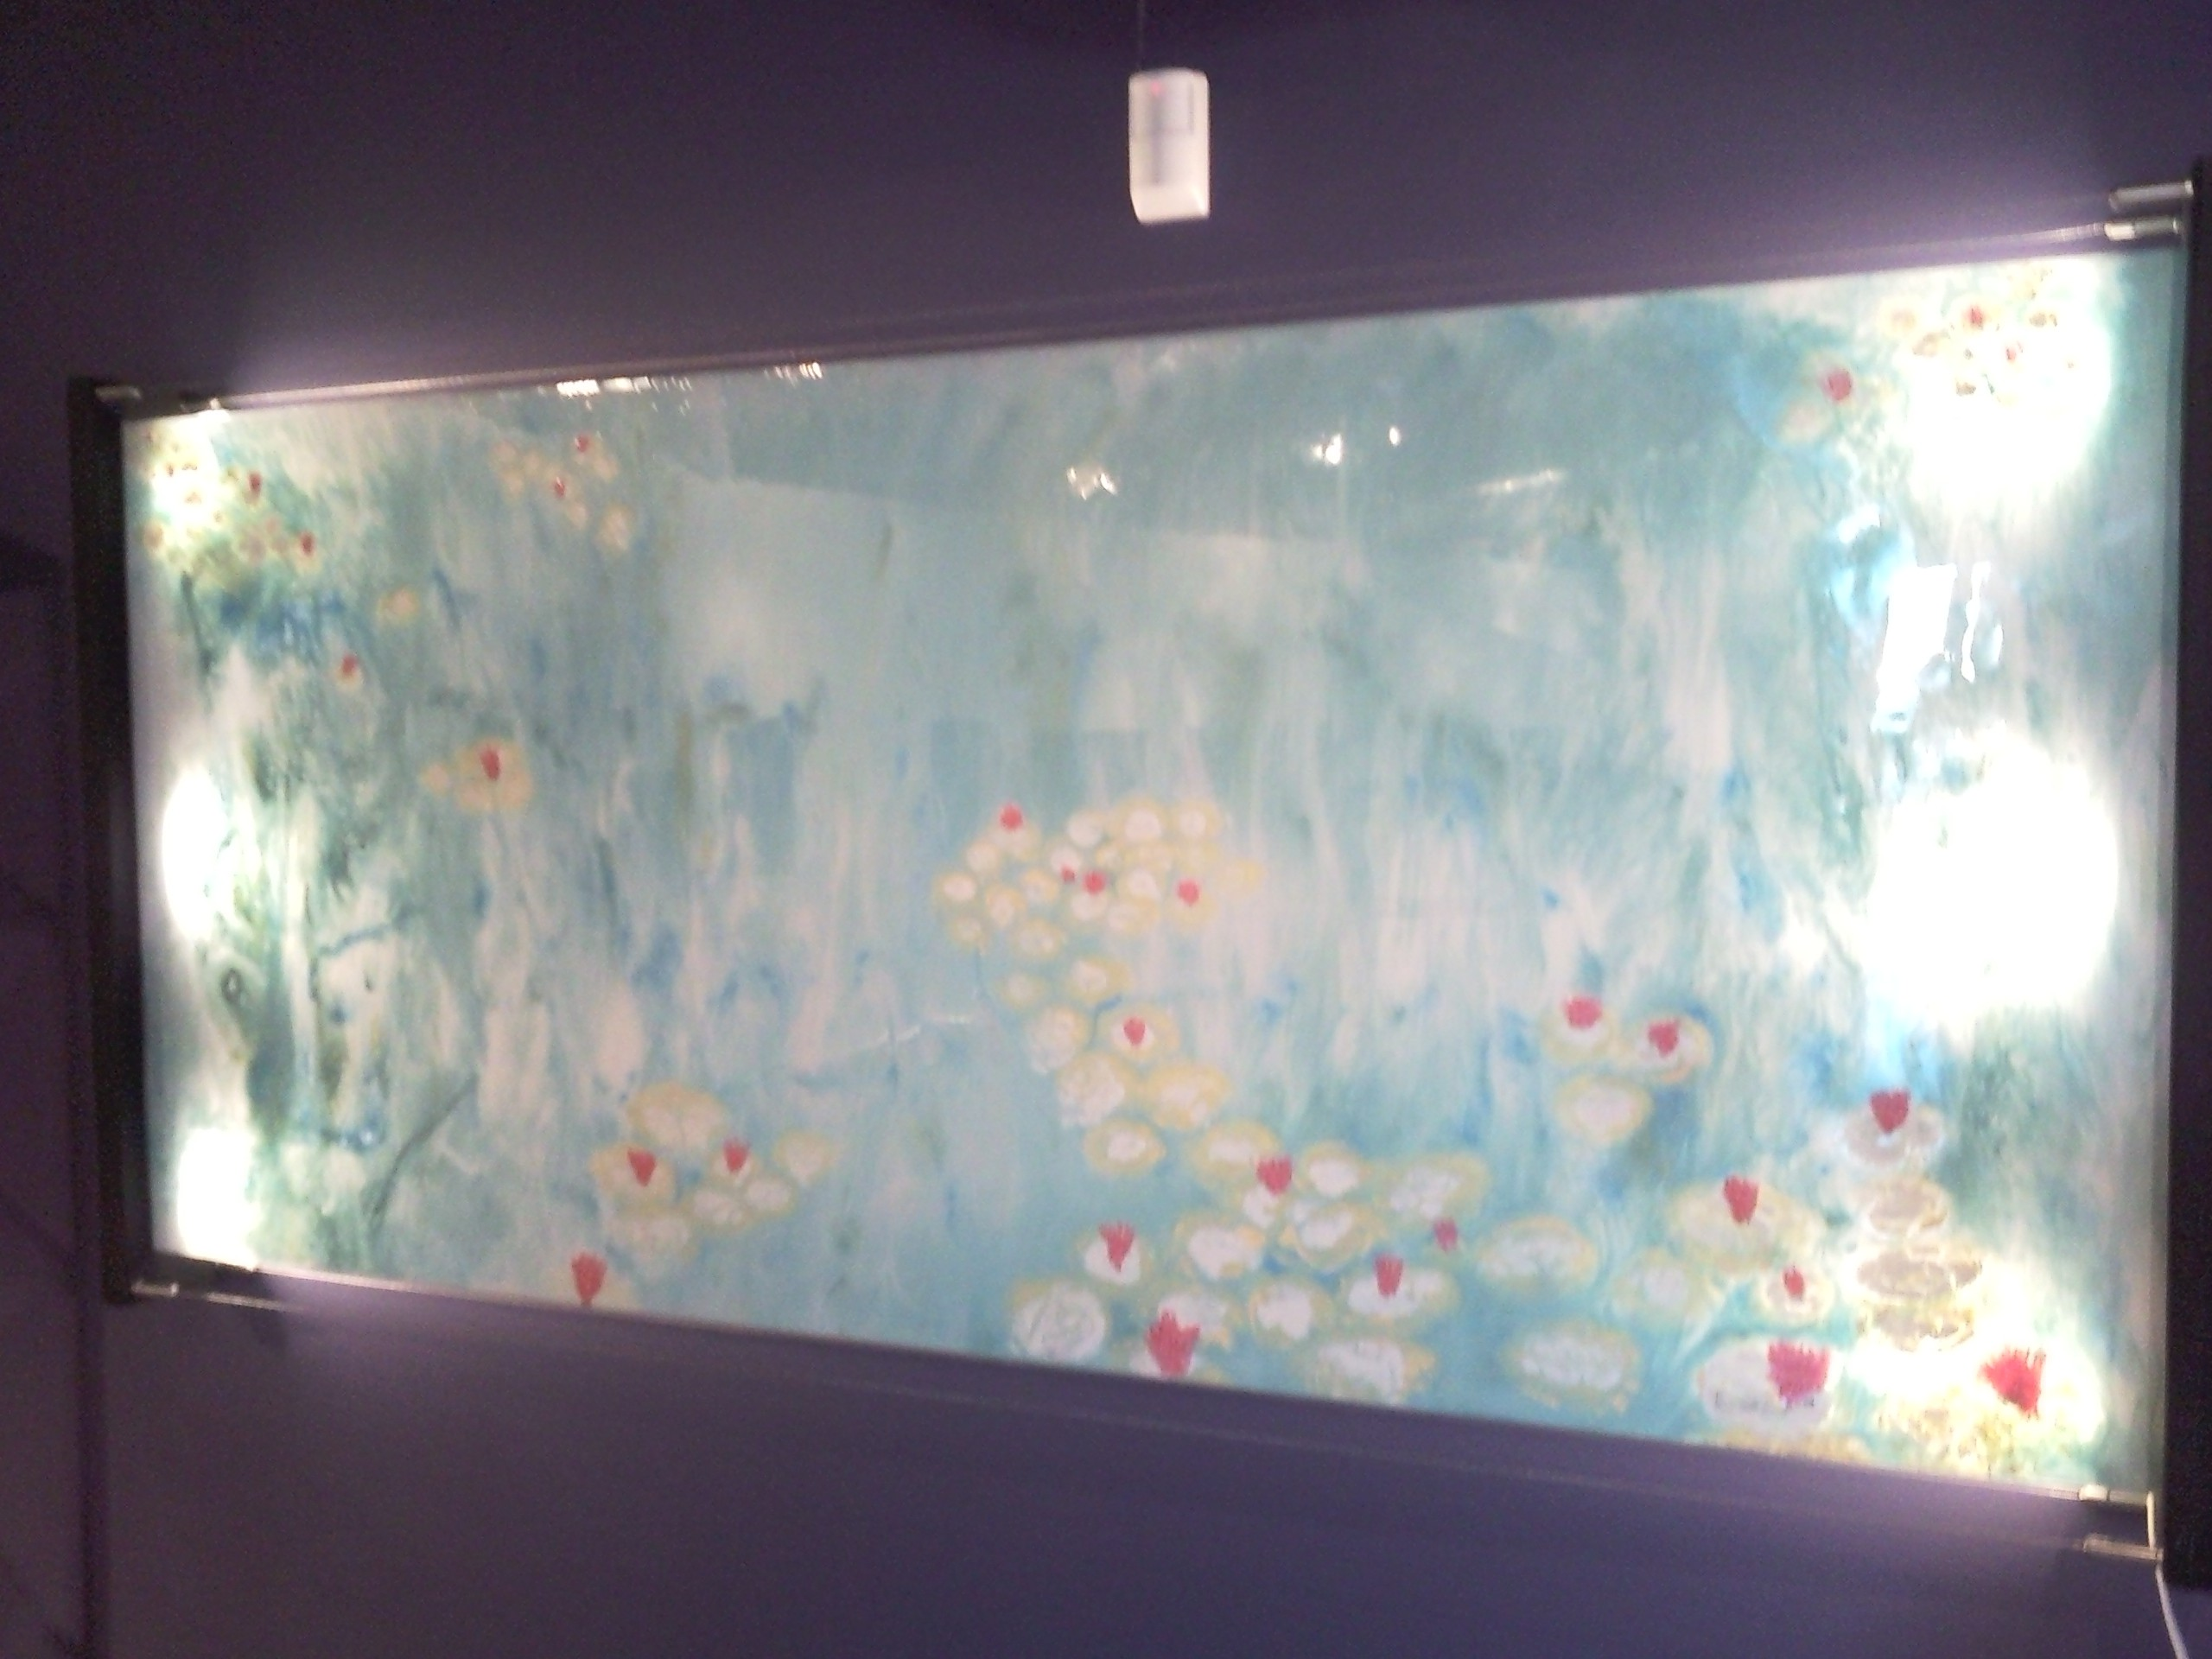 "Water Lilies #14, 2010 72""x38"", Liquid Plastic, Oil Paint, Porcelain on Glass Sold"